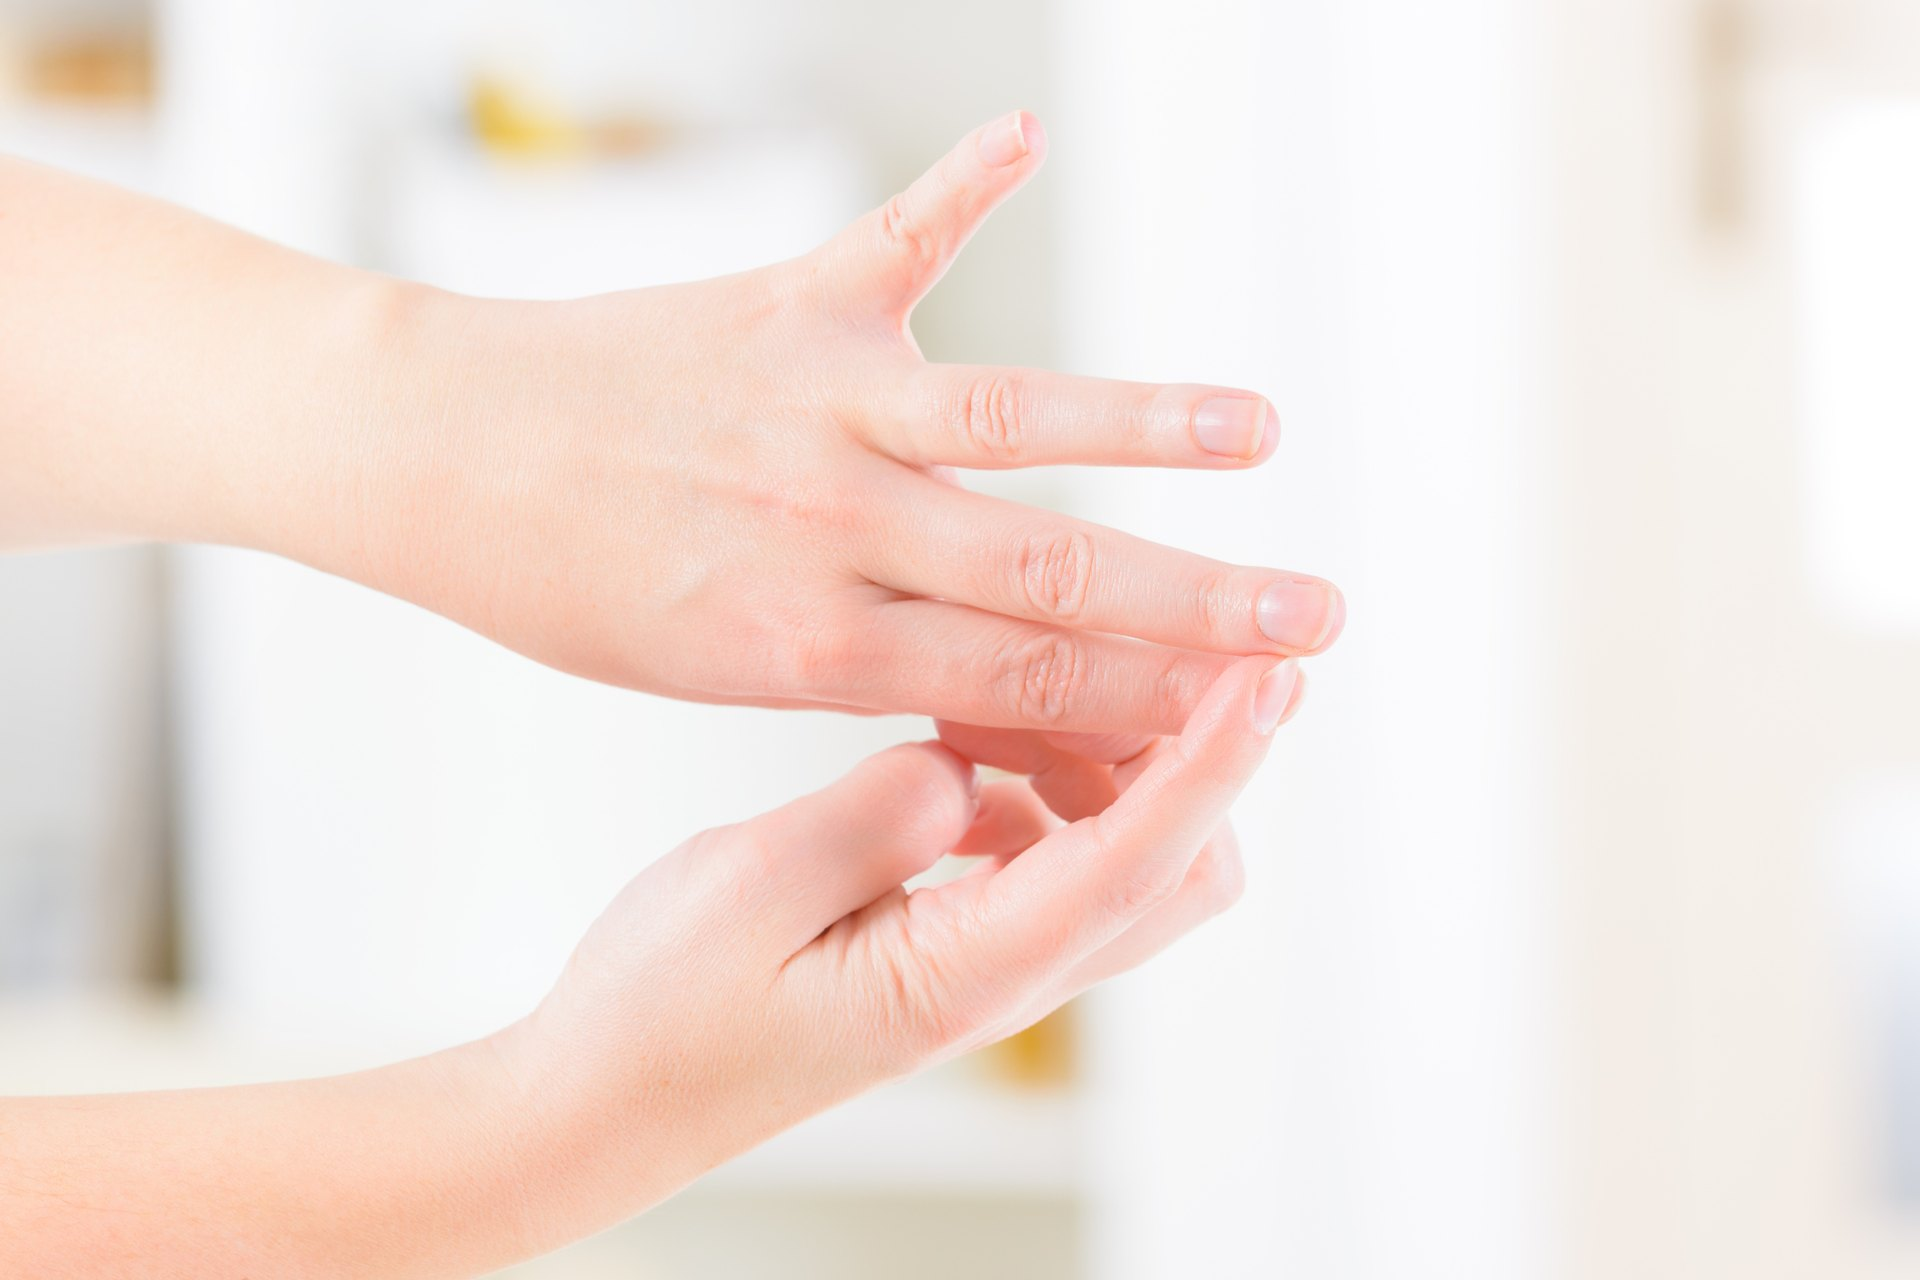 Acupressure Points on the Fingers & Feet | LIVESTRONG.COM